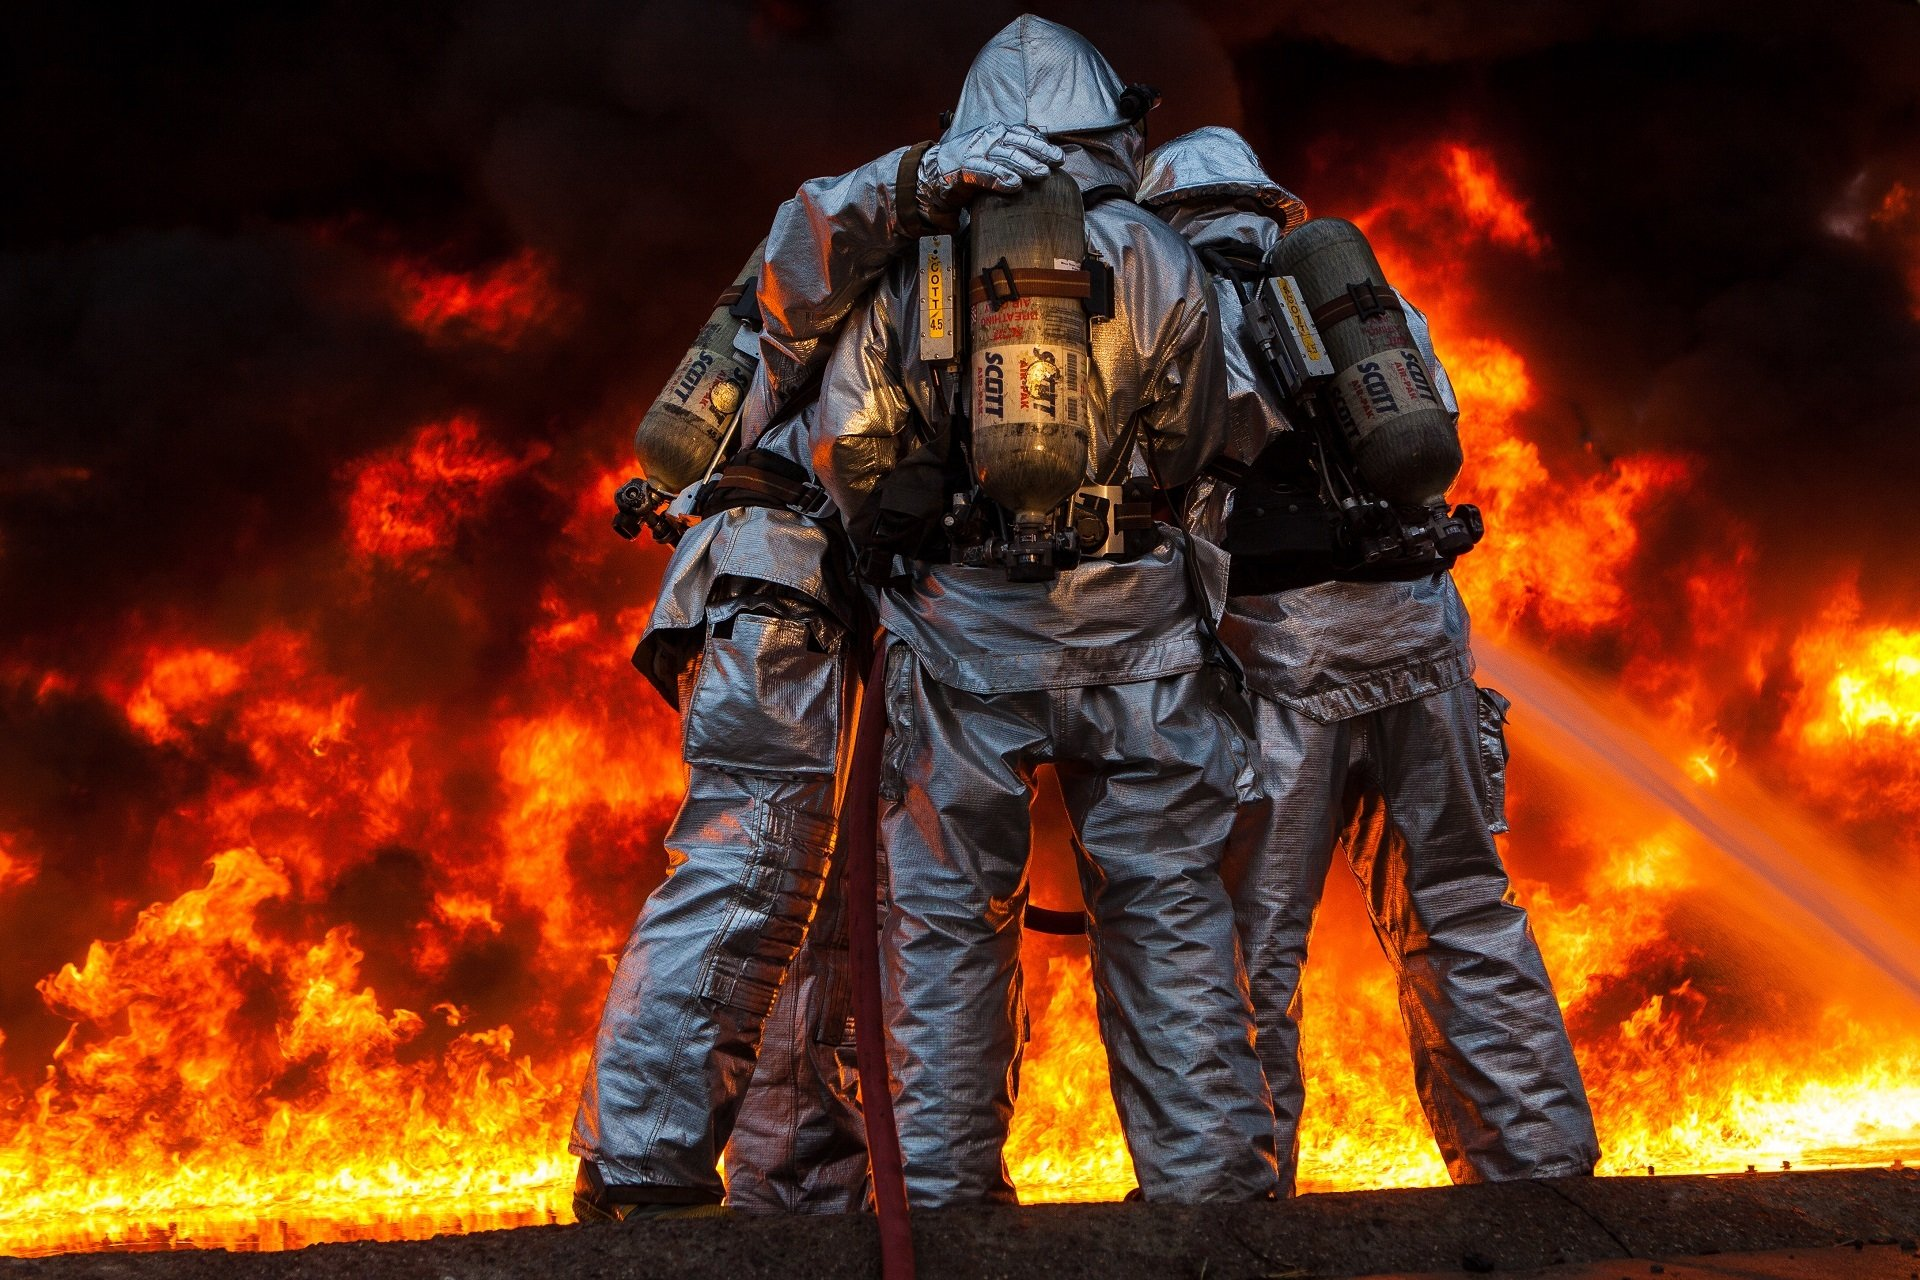 High Resolution Firefighter Hd 1920x1280 Wallpaper ID27730 For PC